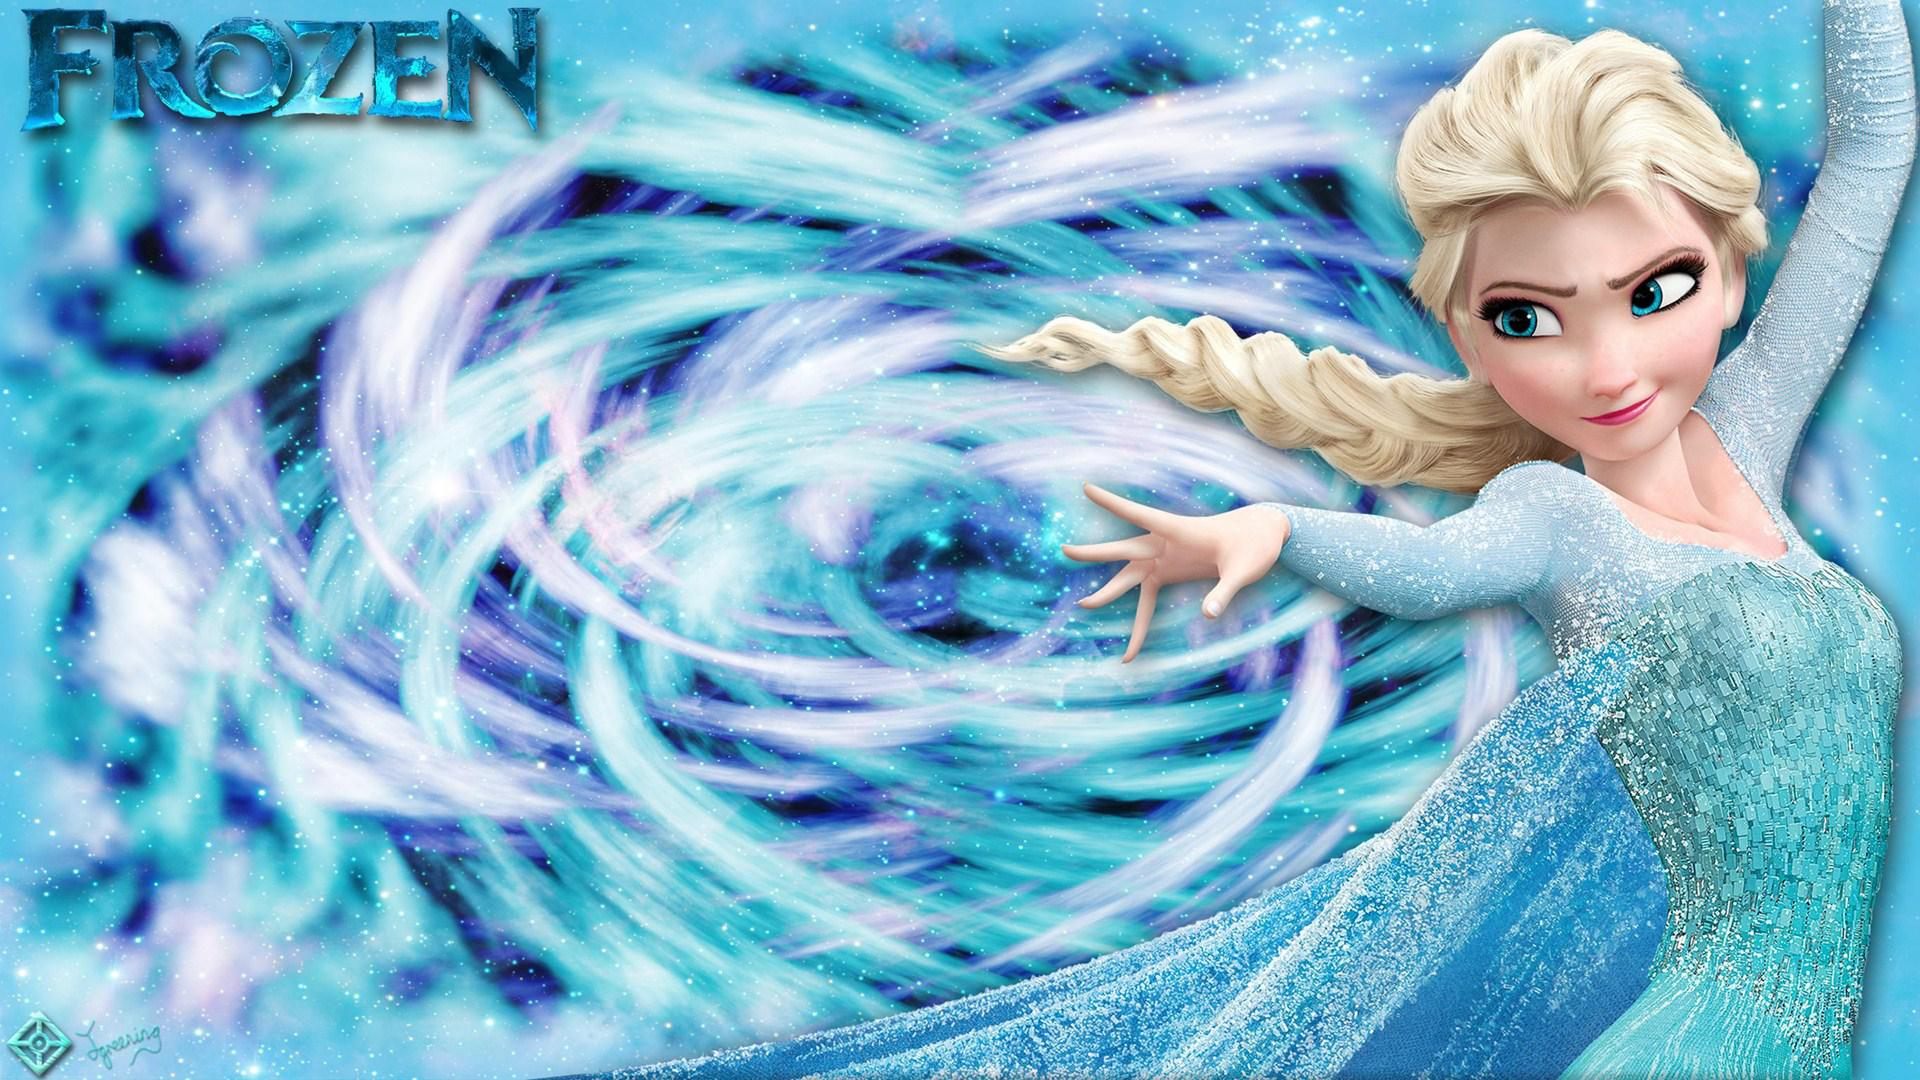 HD Best Elsa Frozen Disney Wallpaper Download   139941 1920x1080